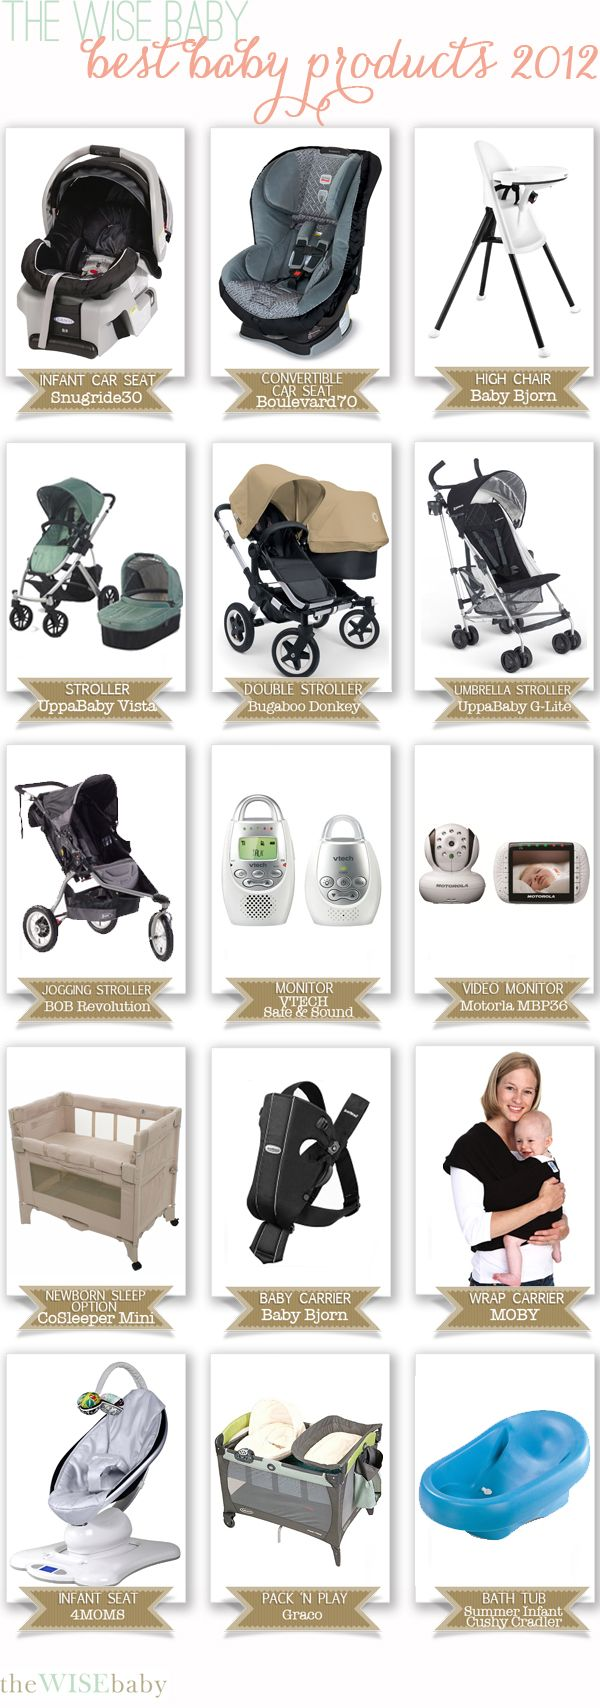 "For all my preggo ladies - ""best baby products 2012"" Didn't use most these things for my oldest. Would get some products."